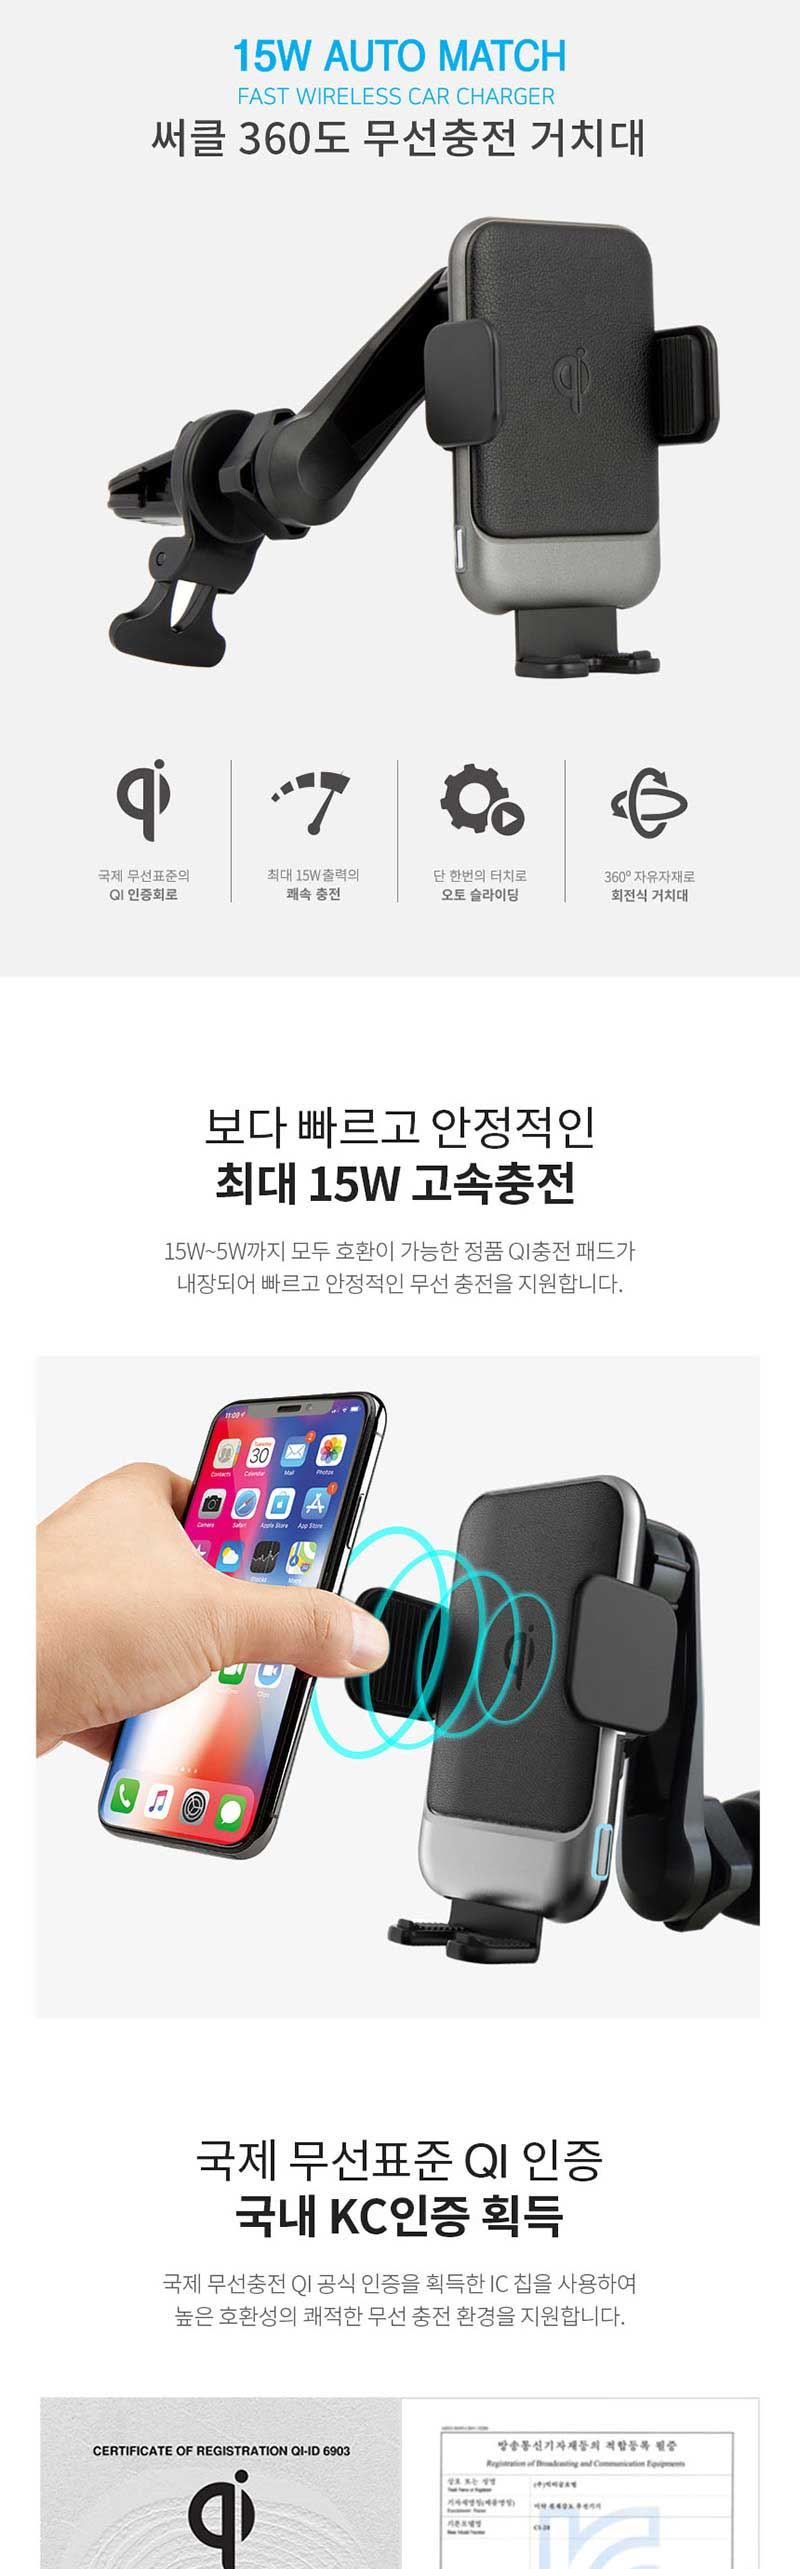 circle_360_wireless_charger_01_182220.jpg